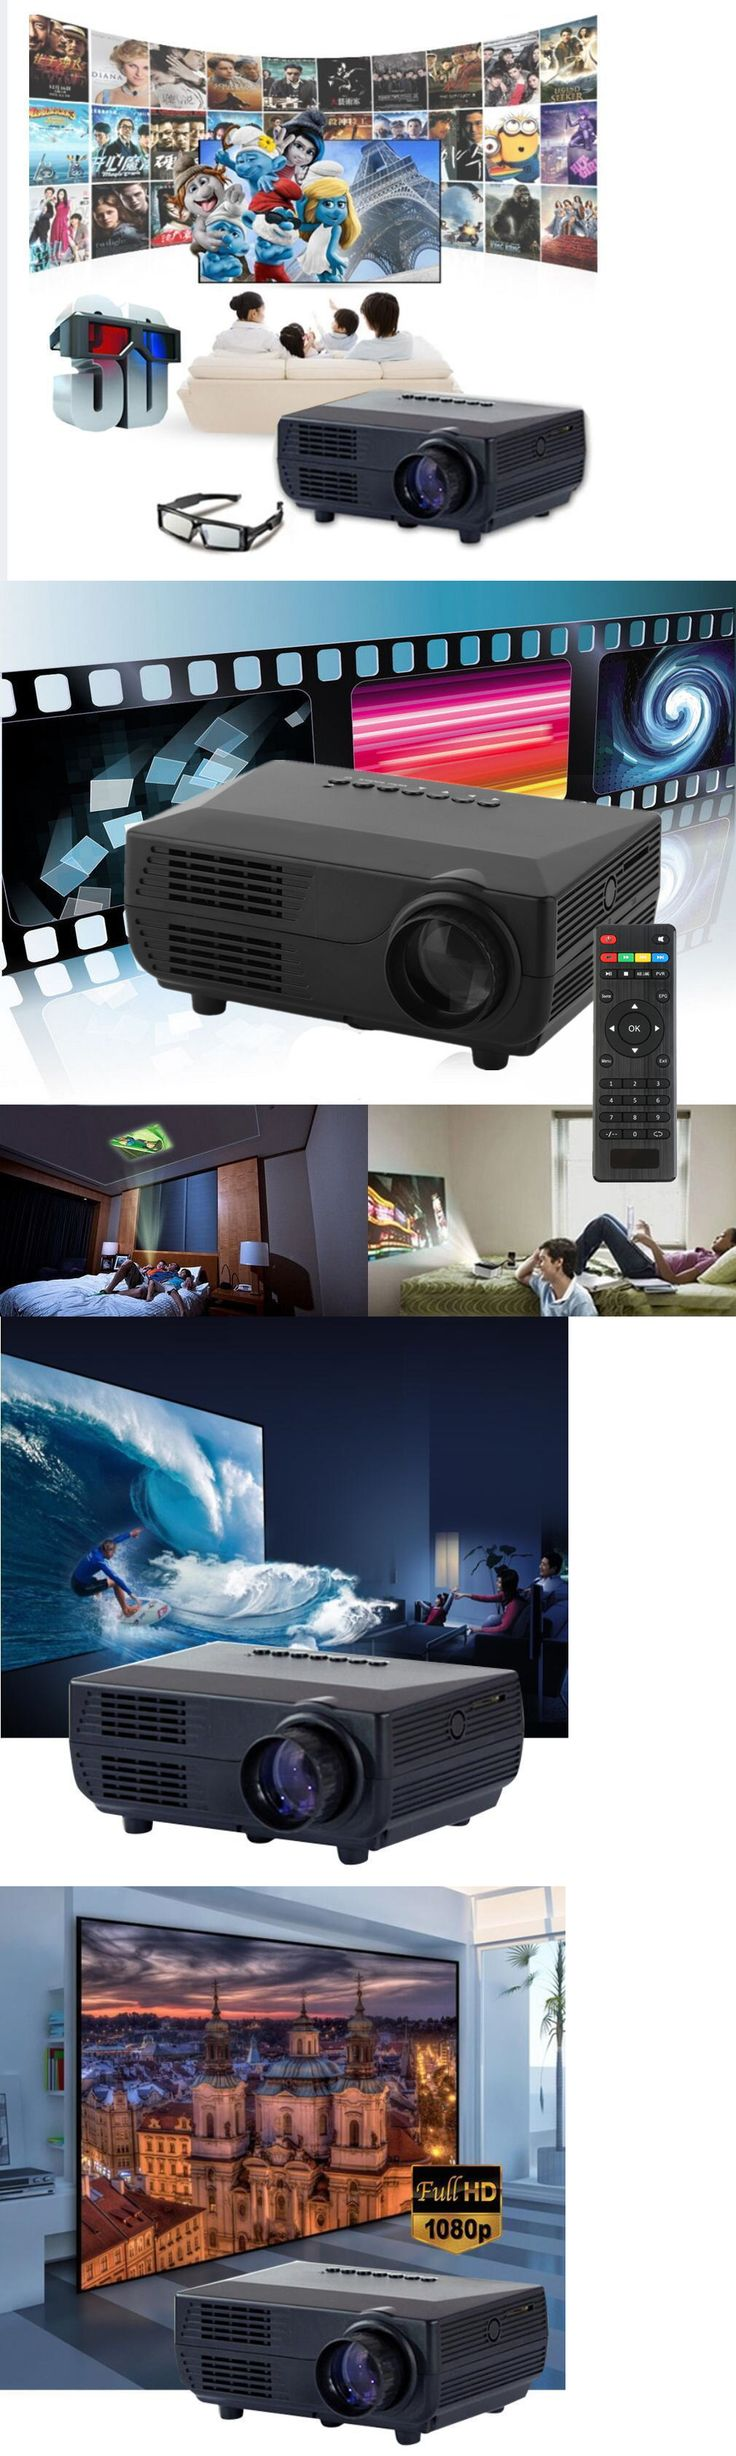 Home Theater Projectors: 3000Lumens 1080P Led Projector Full Hd 3D Home Theater Cinema Tv Video Hdmi Pc -> BUY IT NOW ONLY: $49.68 on eBay!